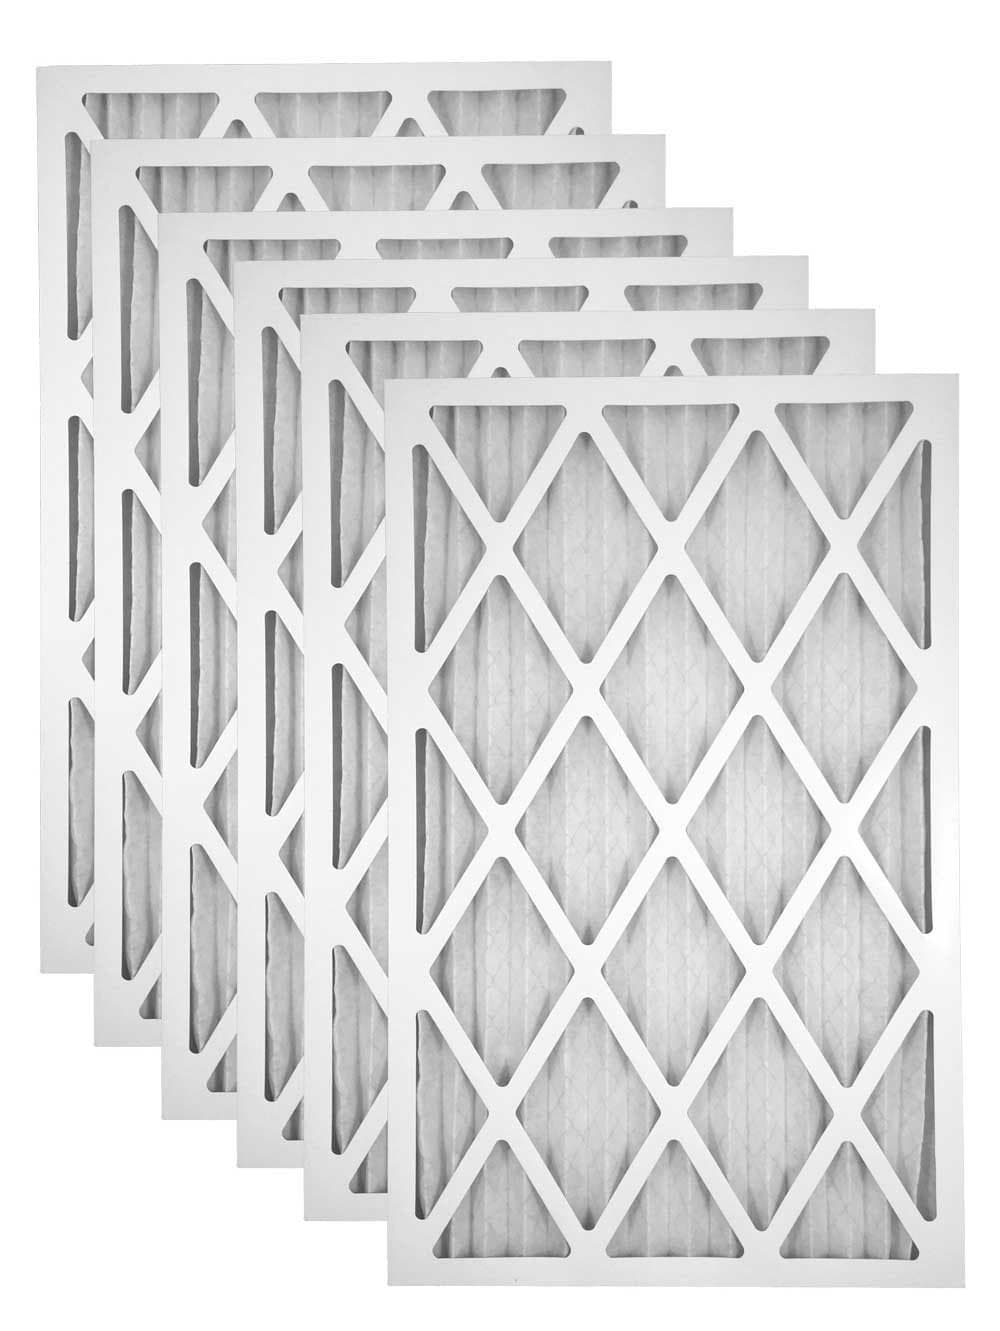 18x18x2 Merv 8 AC Furnace Filter - Case of 6